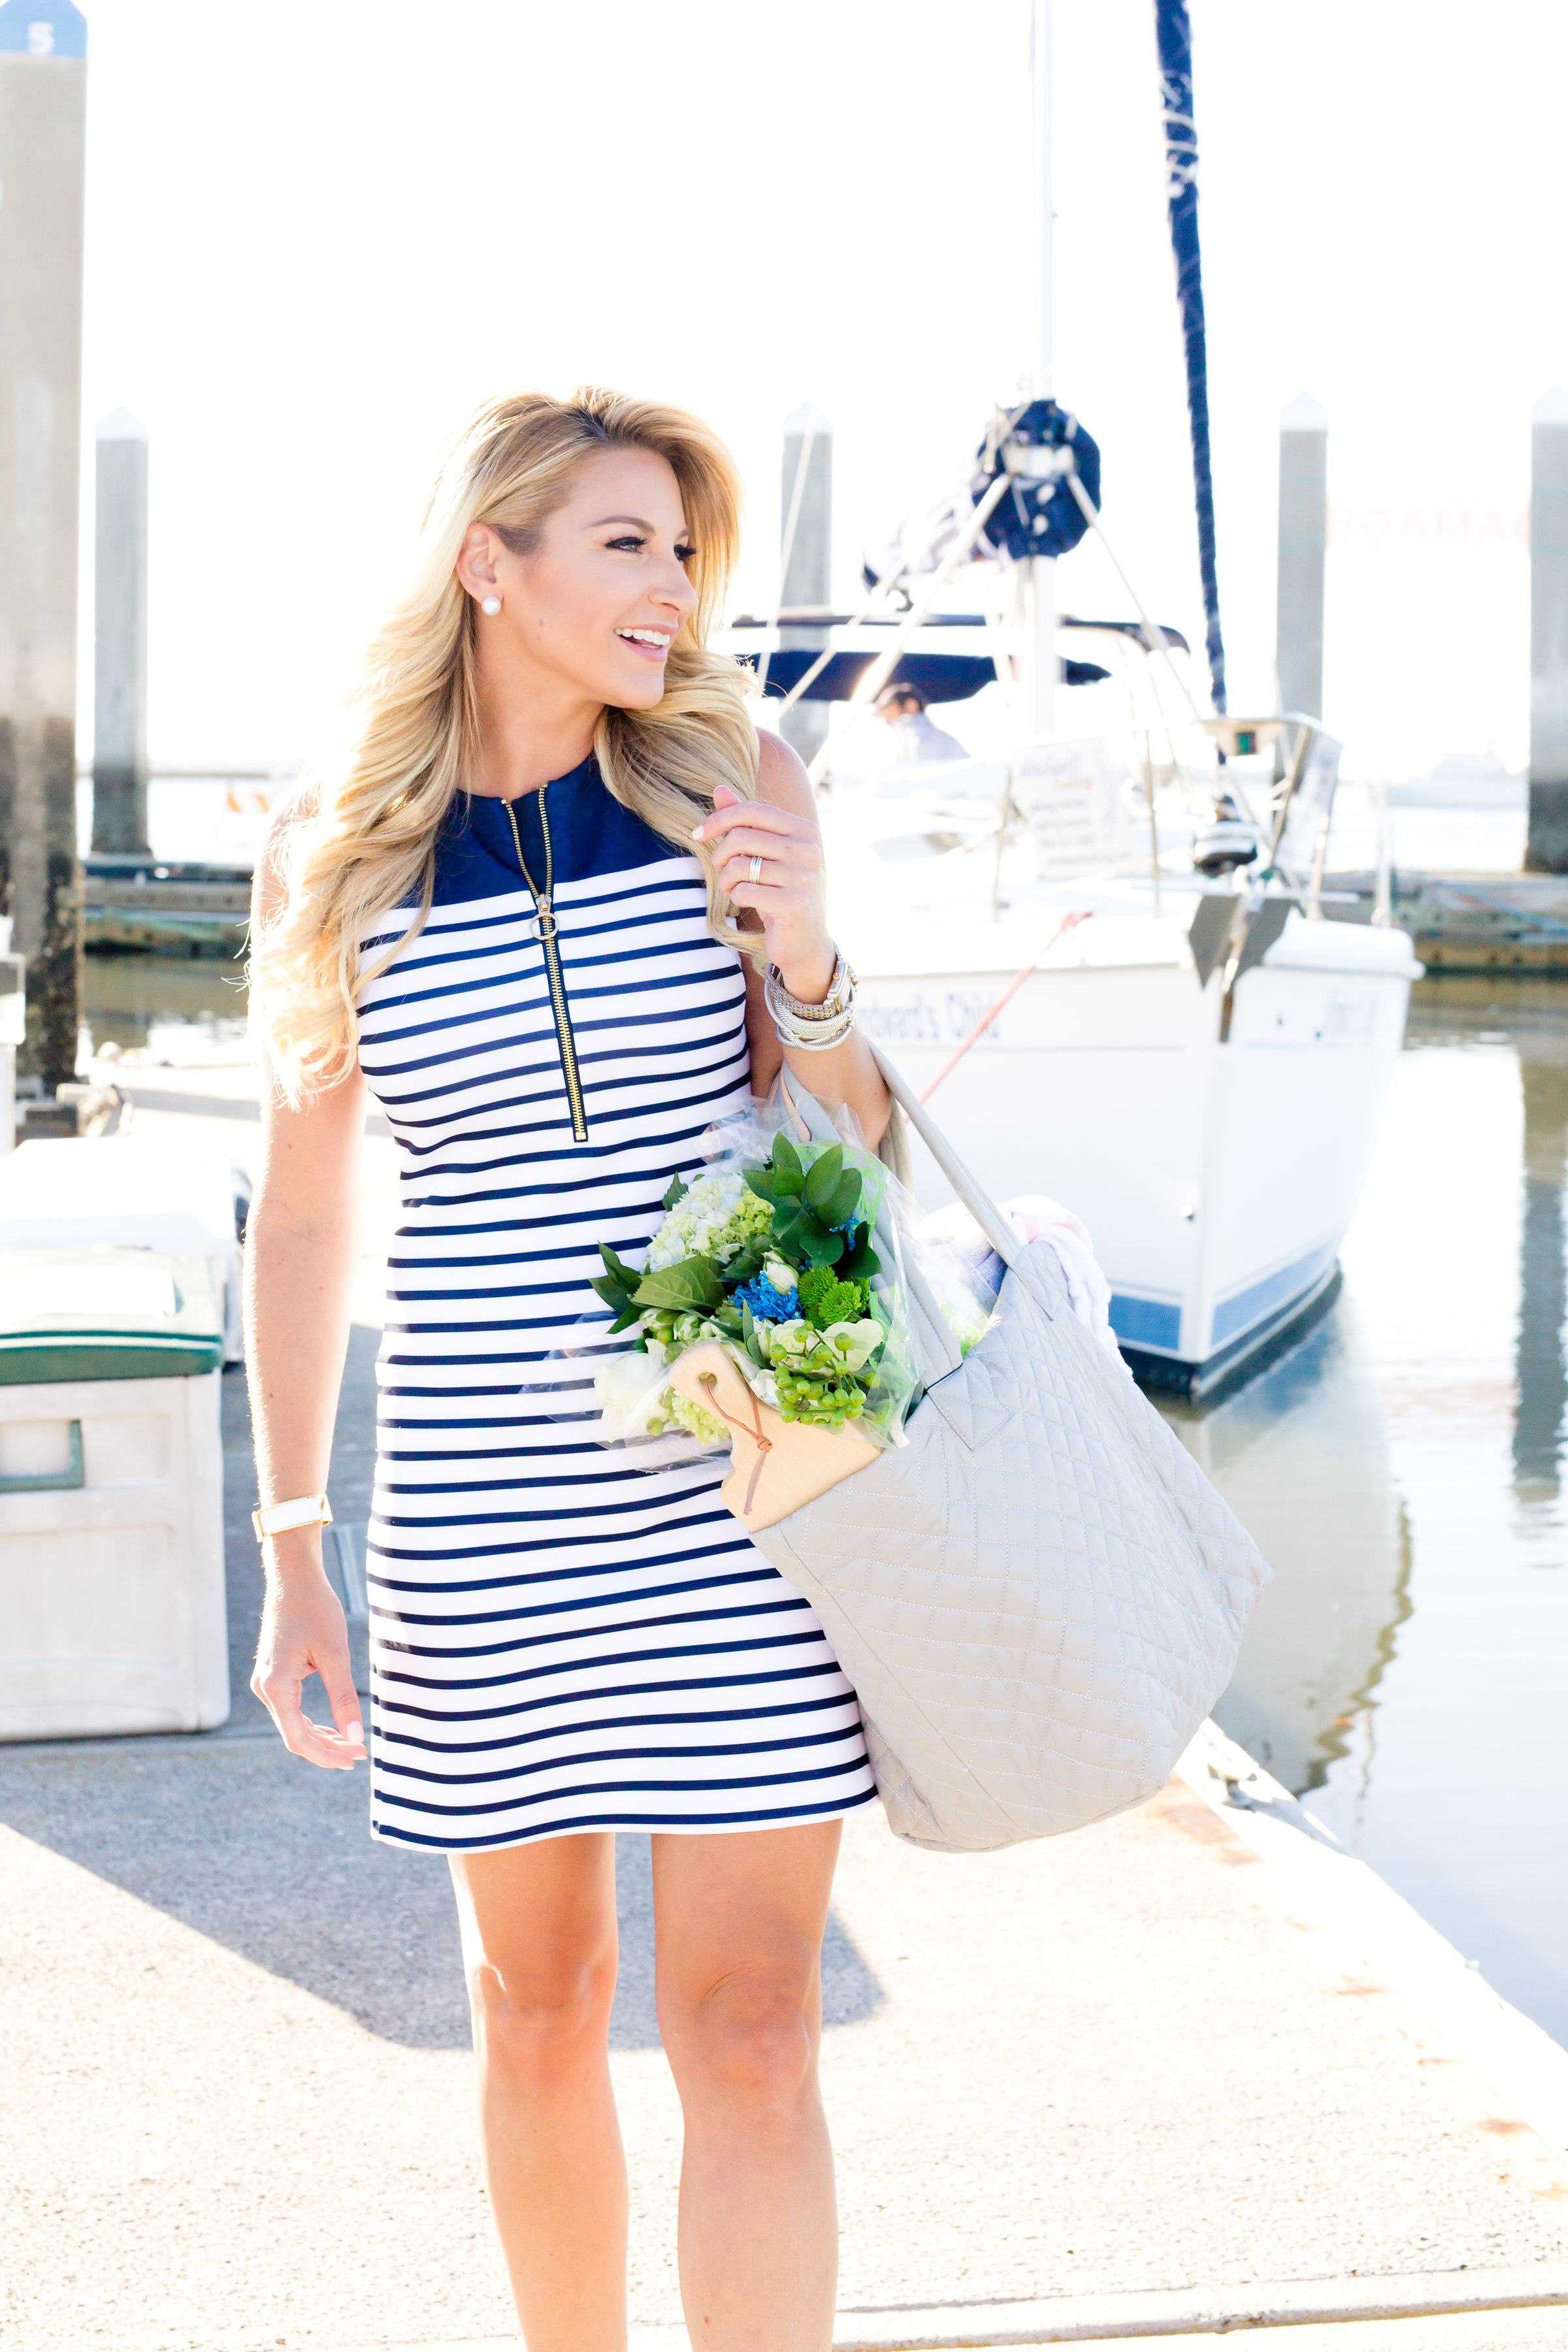 Outfit Spring Date Ideas Shop Dandy A Florida Based Style And Beauty Blog By Danielle